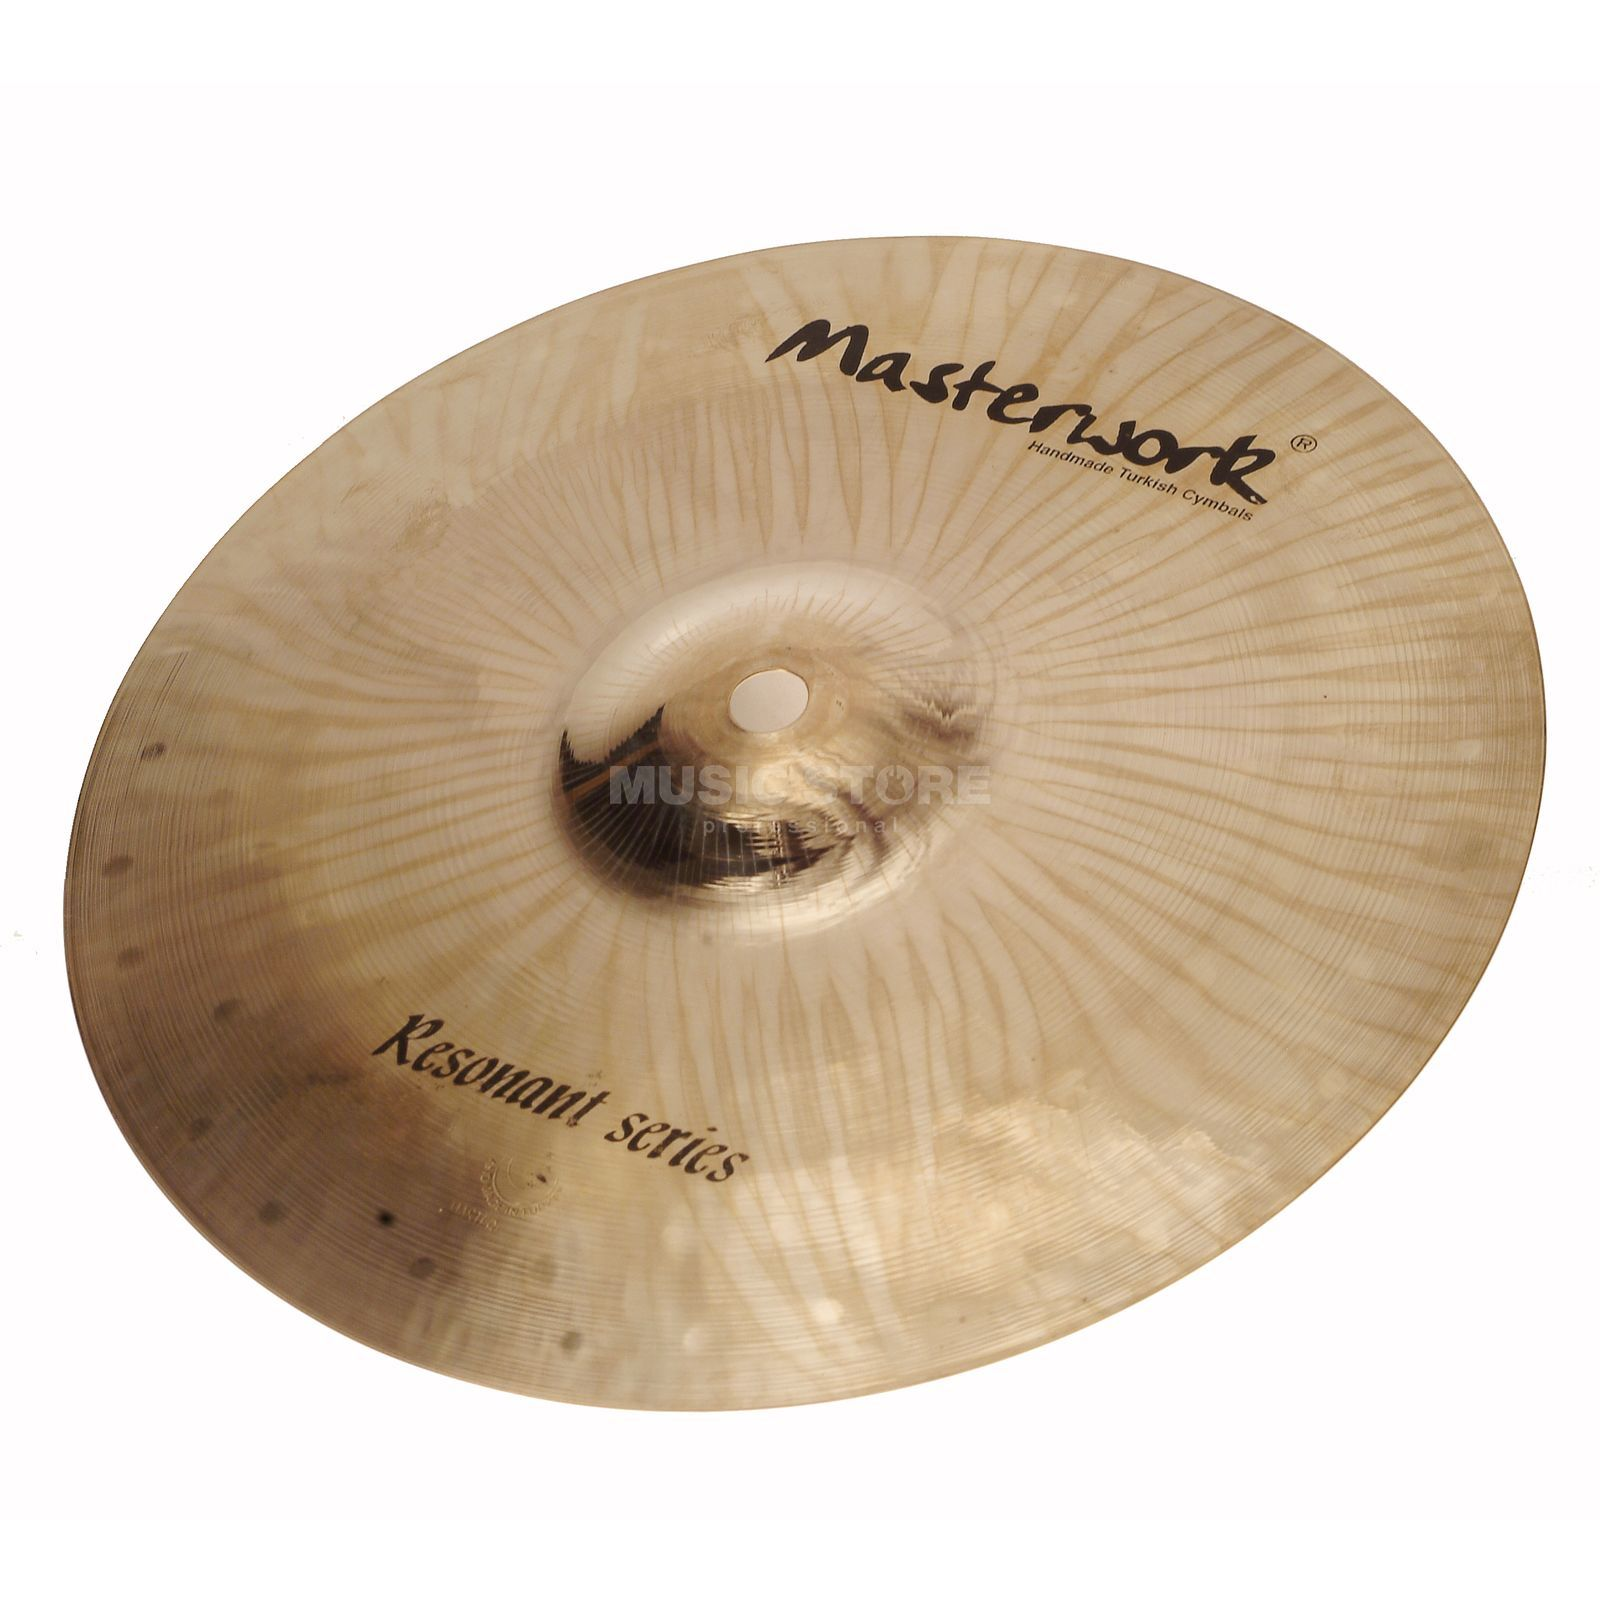 "Masterwork Resonant Splash 12"" Brilliant Finish Product Image"